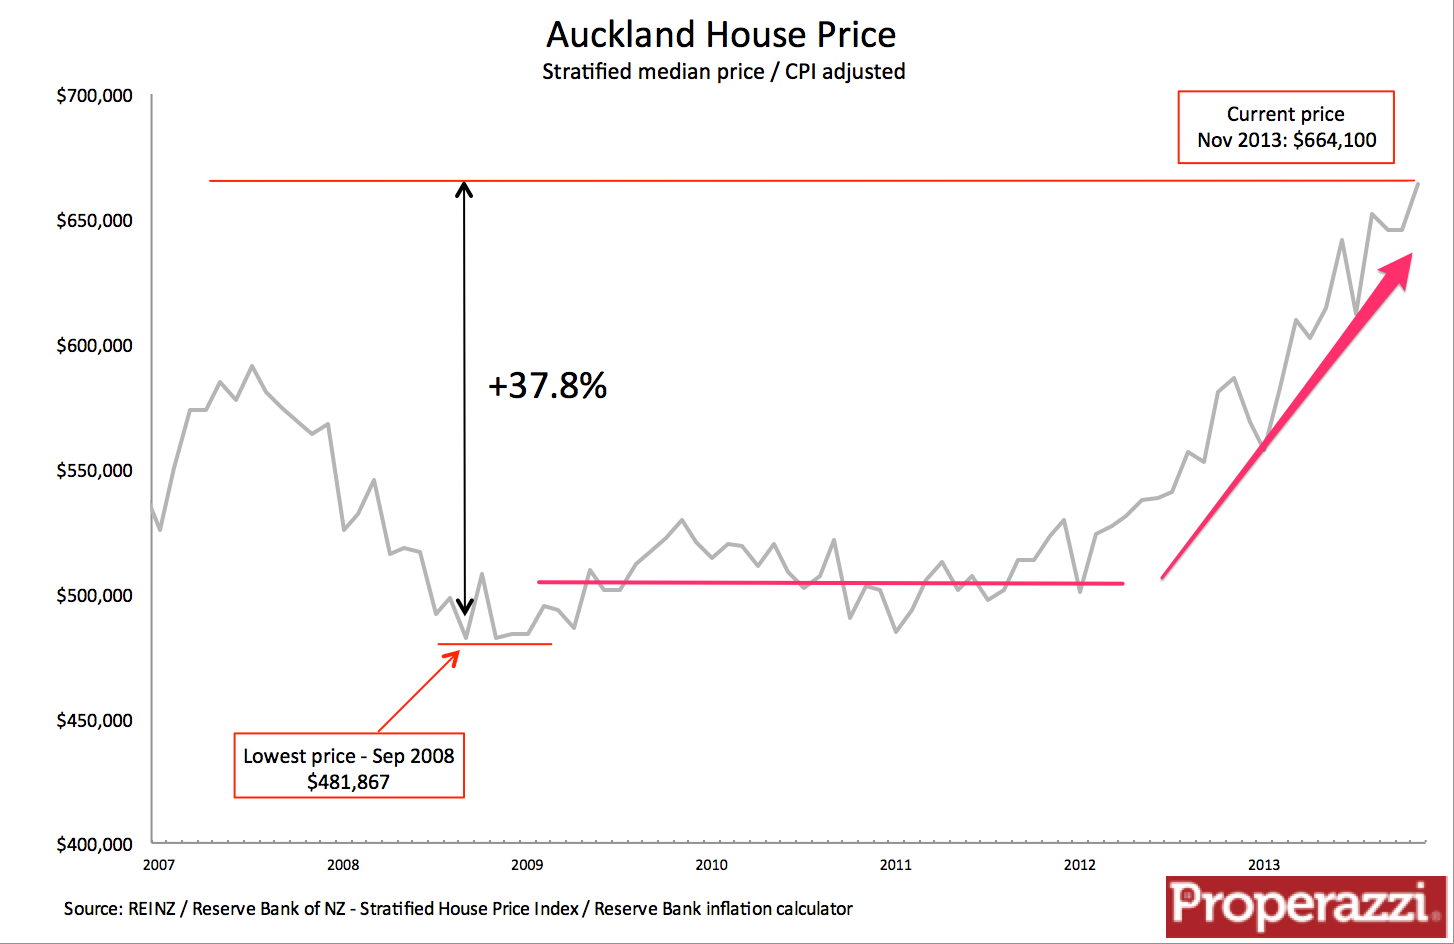 Auckland House Prices Continue Their Relentless Rise